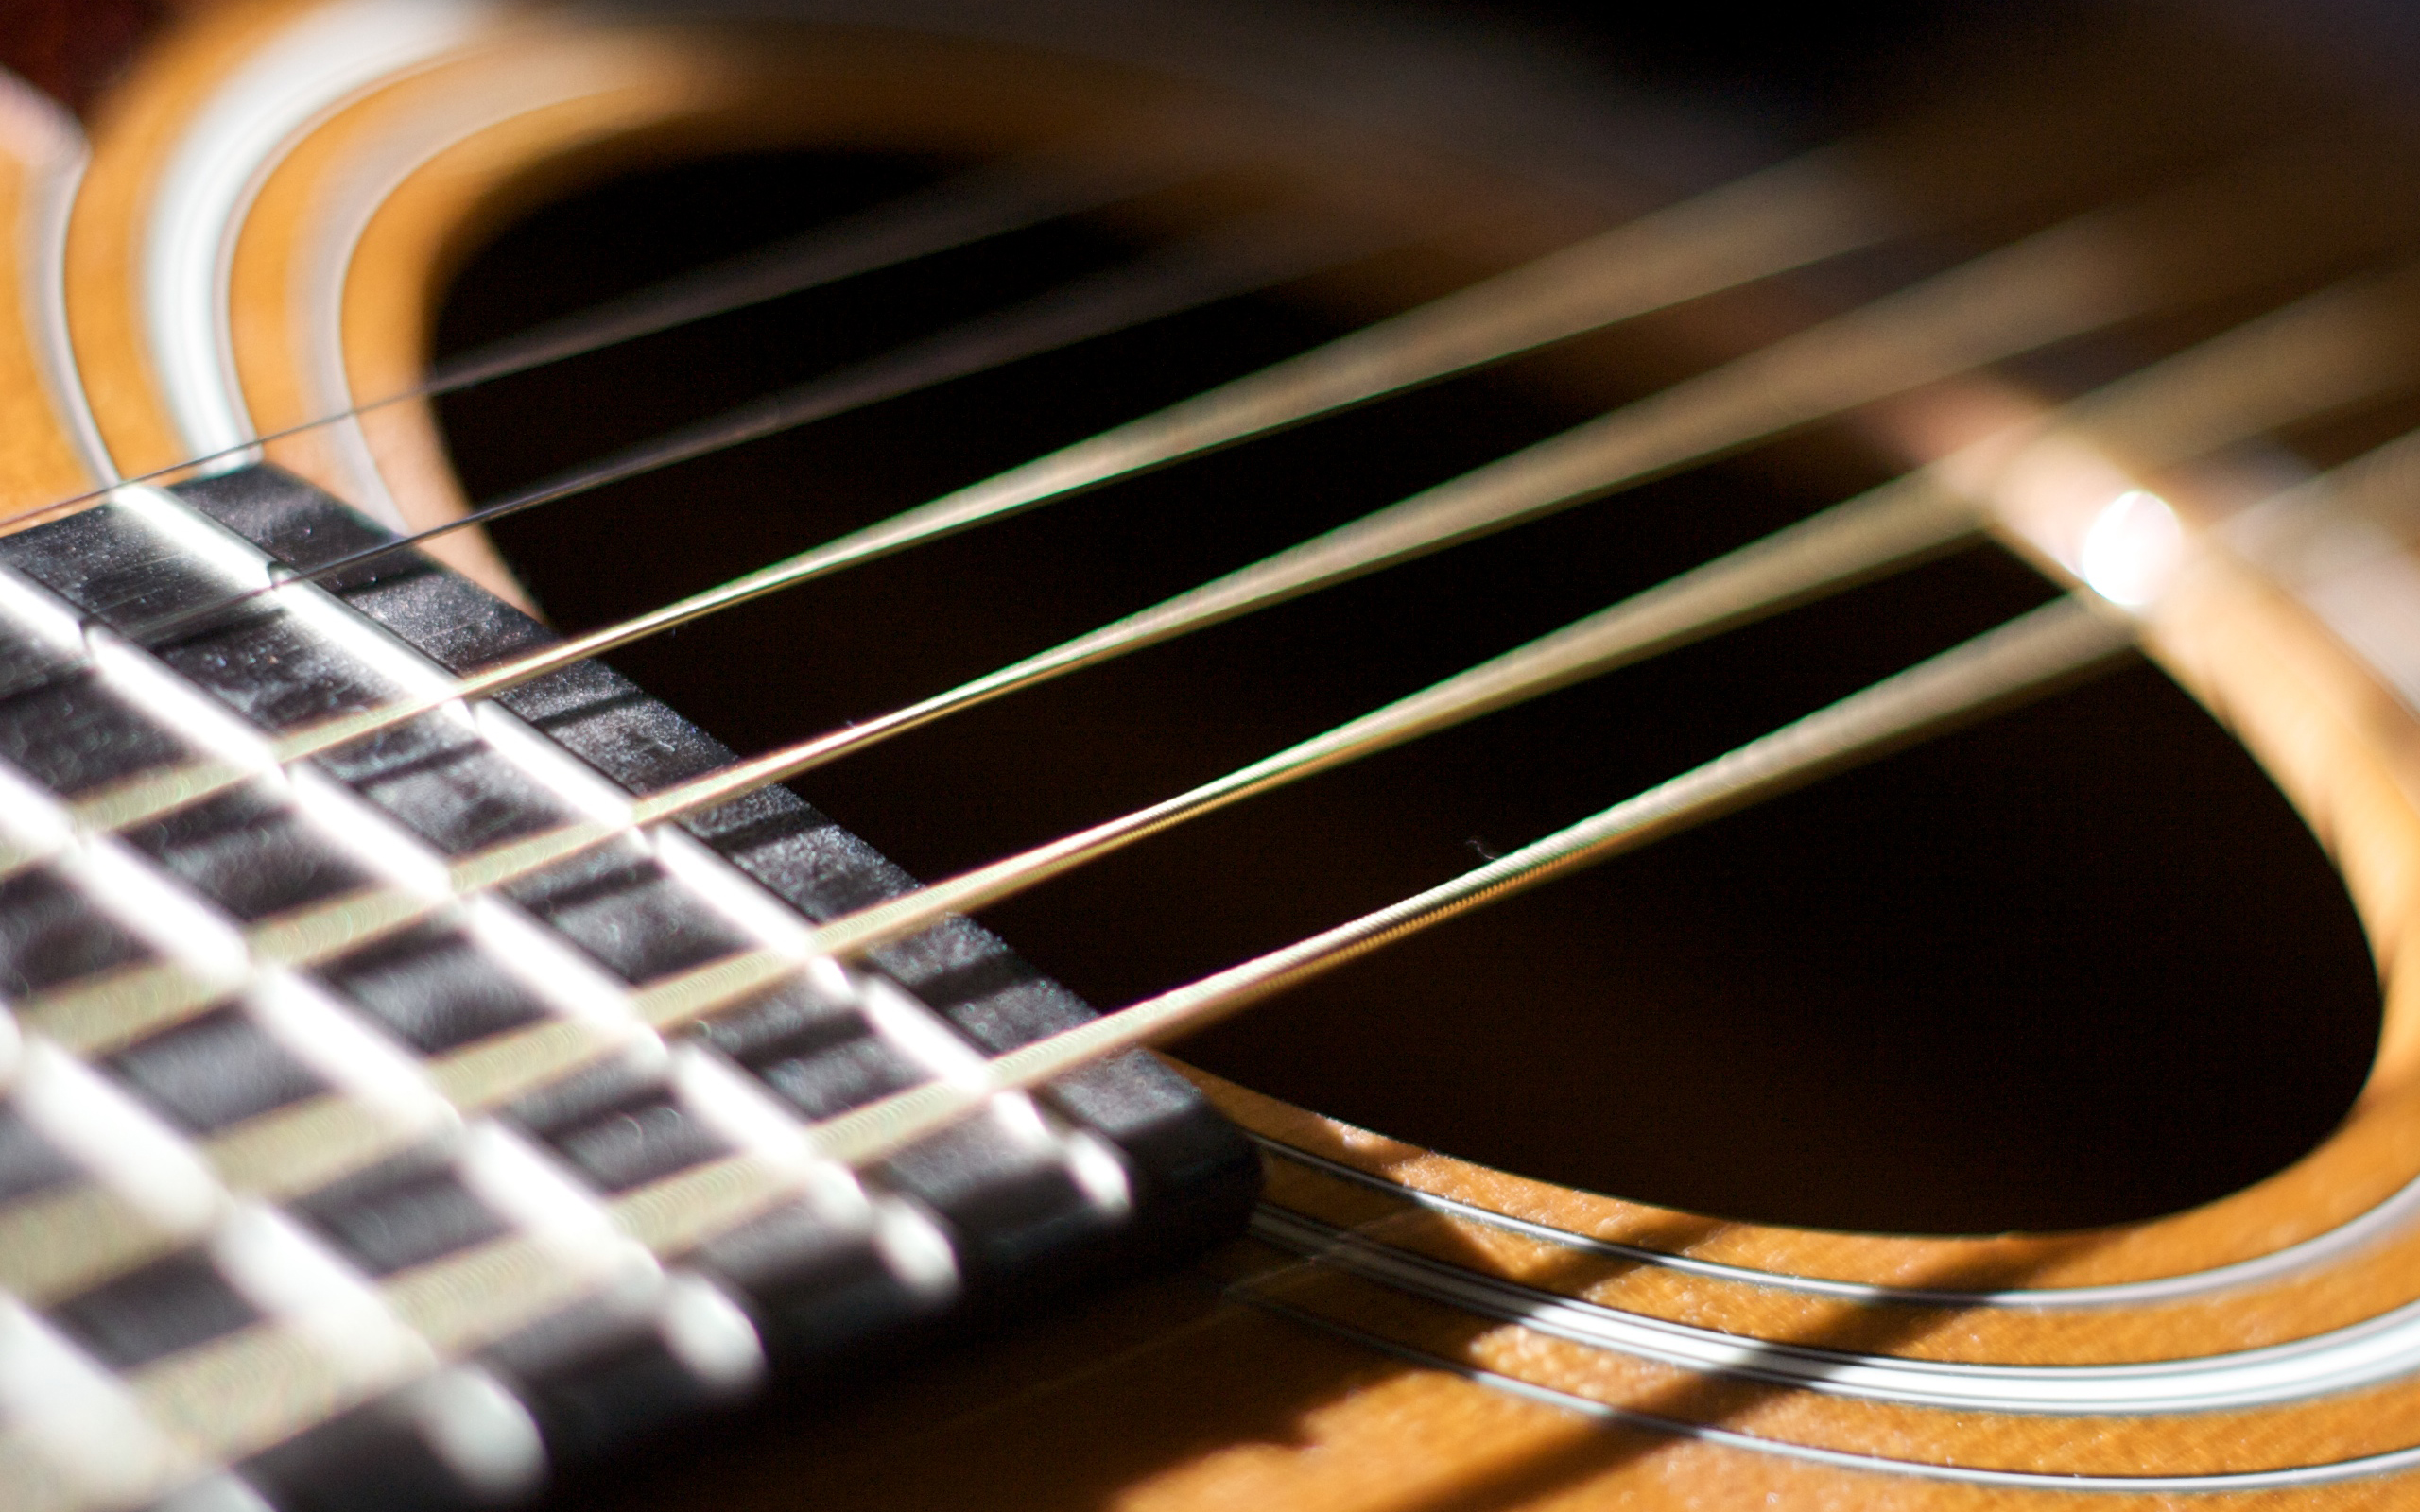 Guitar computer wallpapers desktop backgrounds 2560x1600 id 277266 - Free guitar wallpapers for pc ...